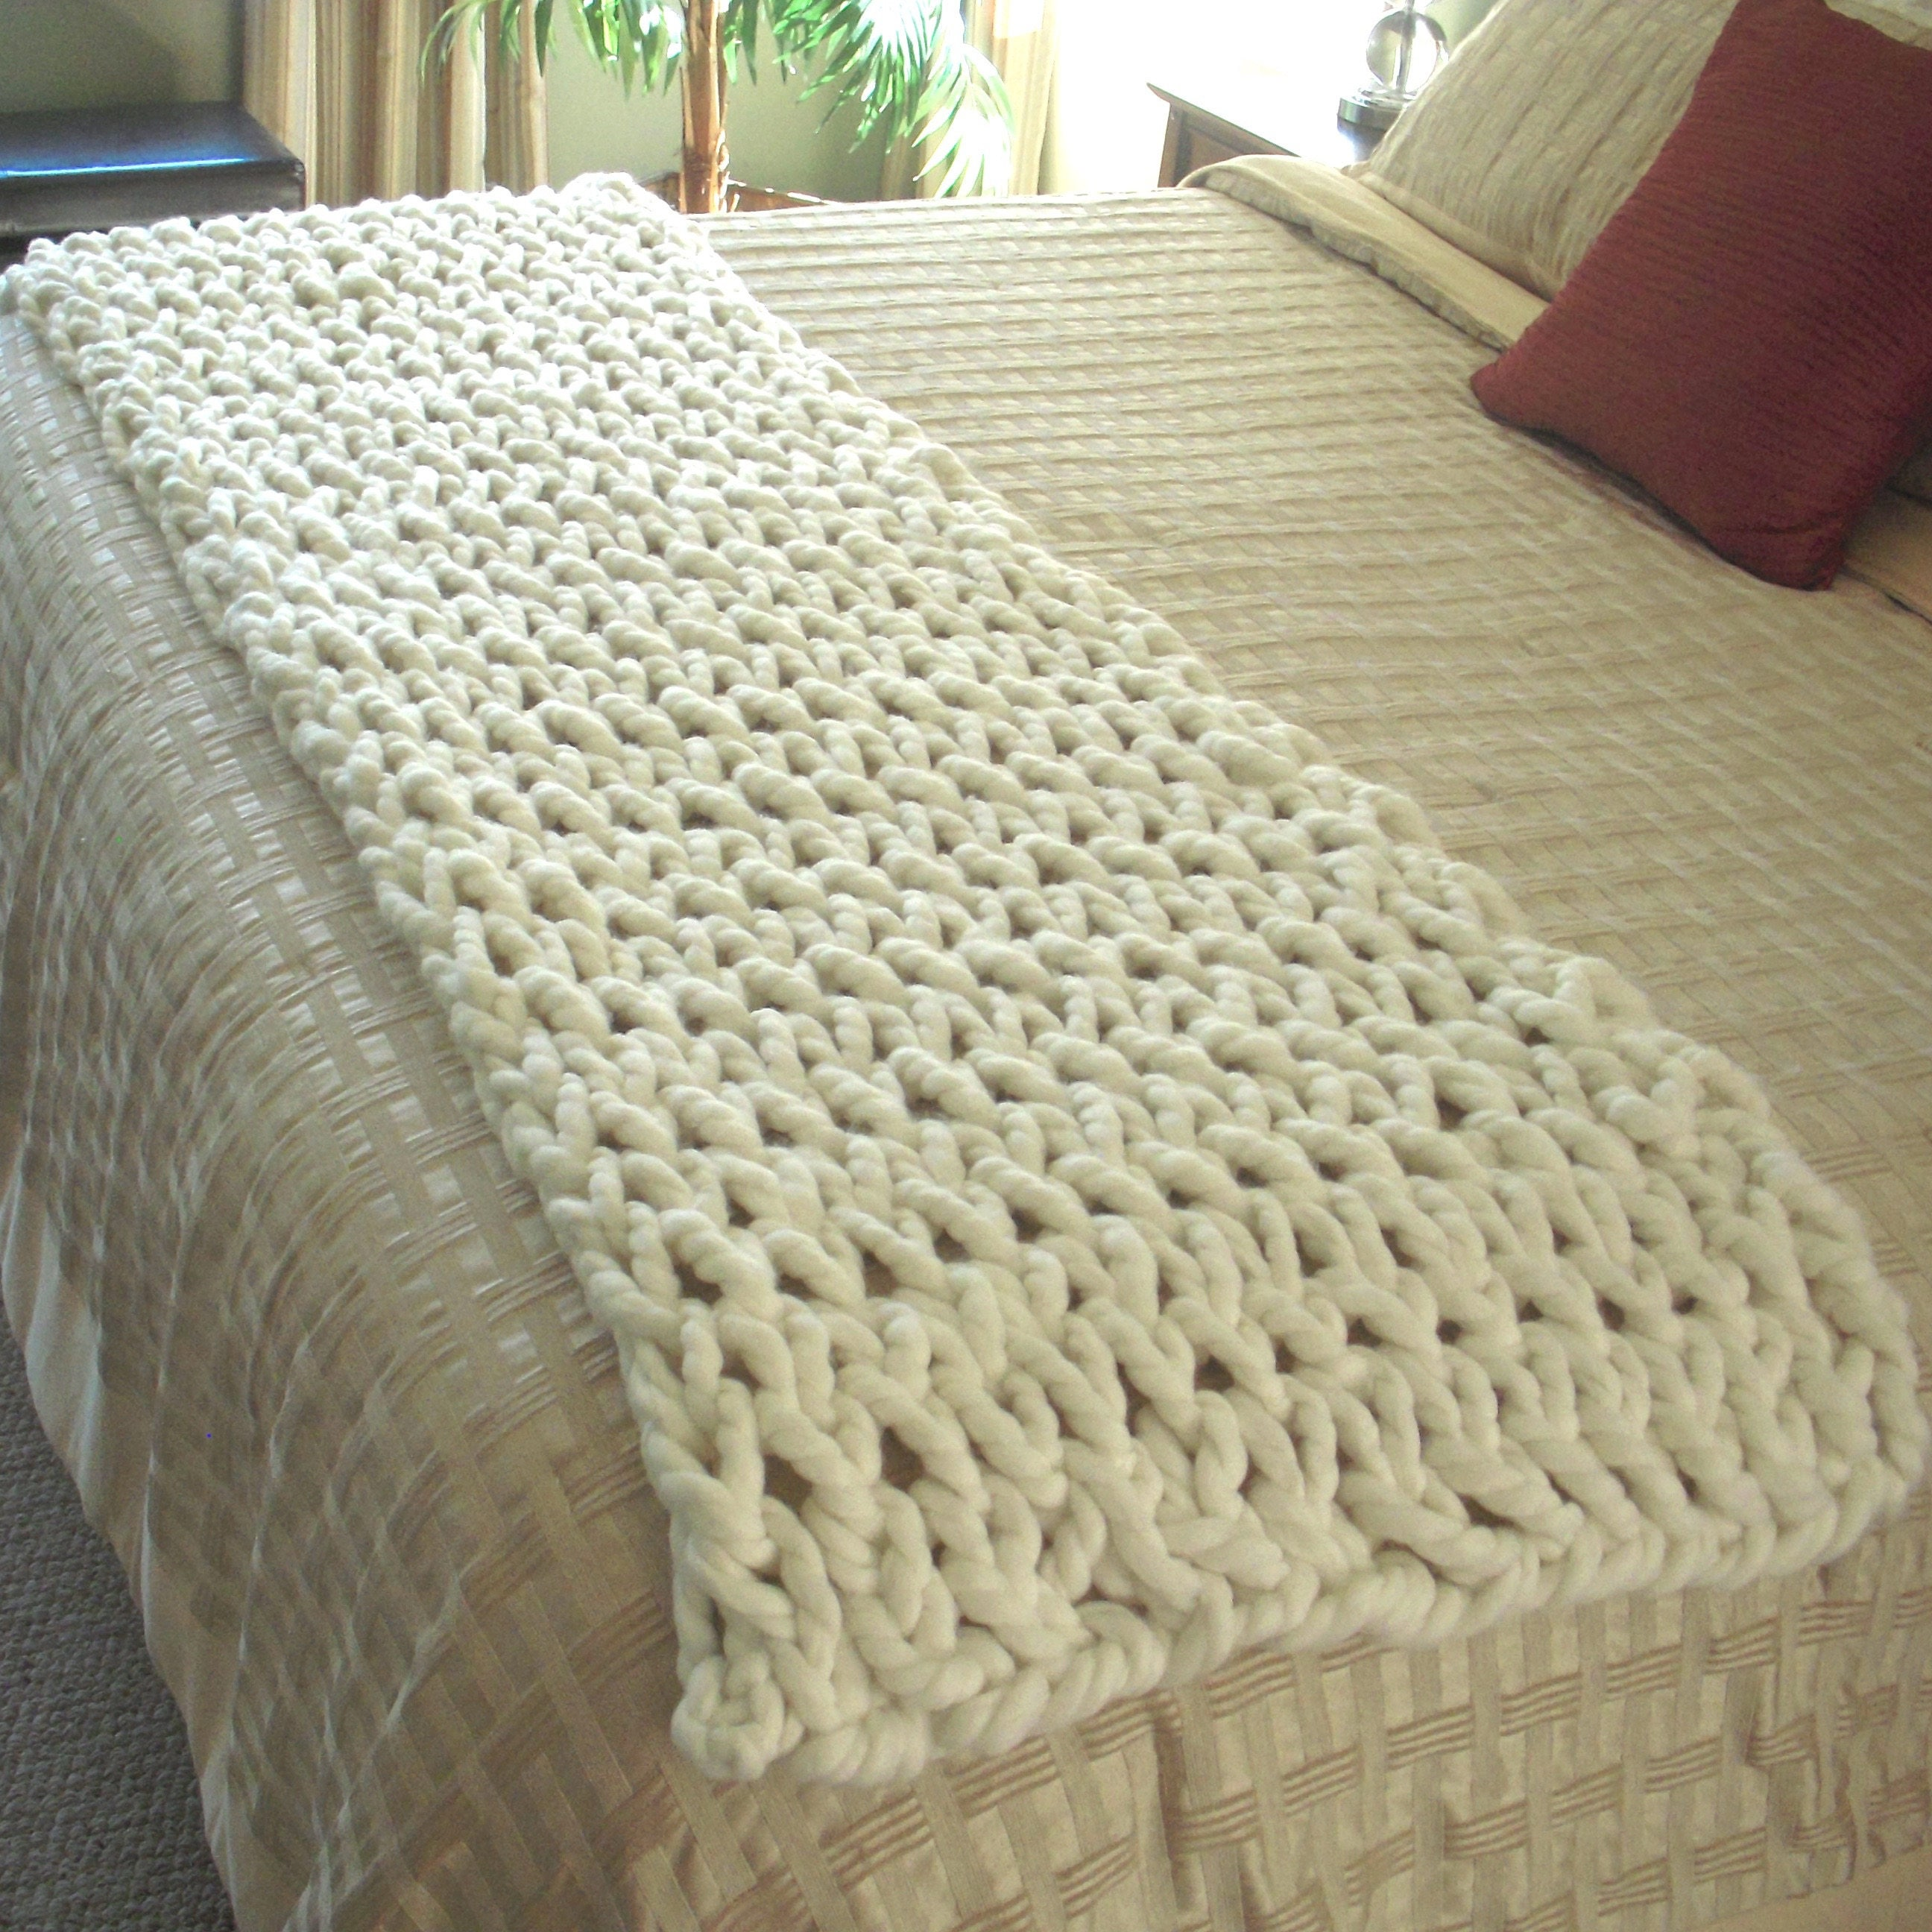 Blanket Pattern - How to Arm Knit a Bed Runner from pokayoka on Etsy ...